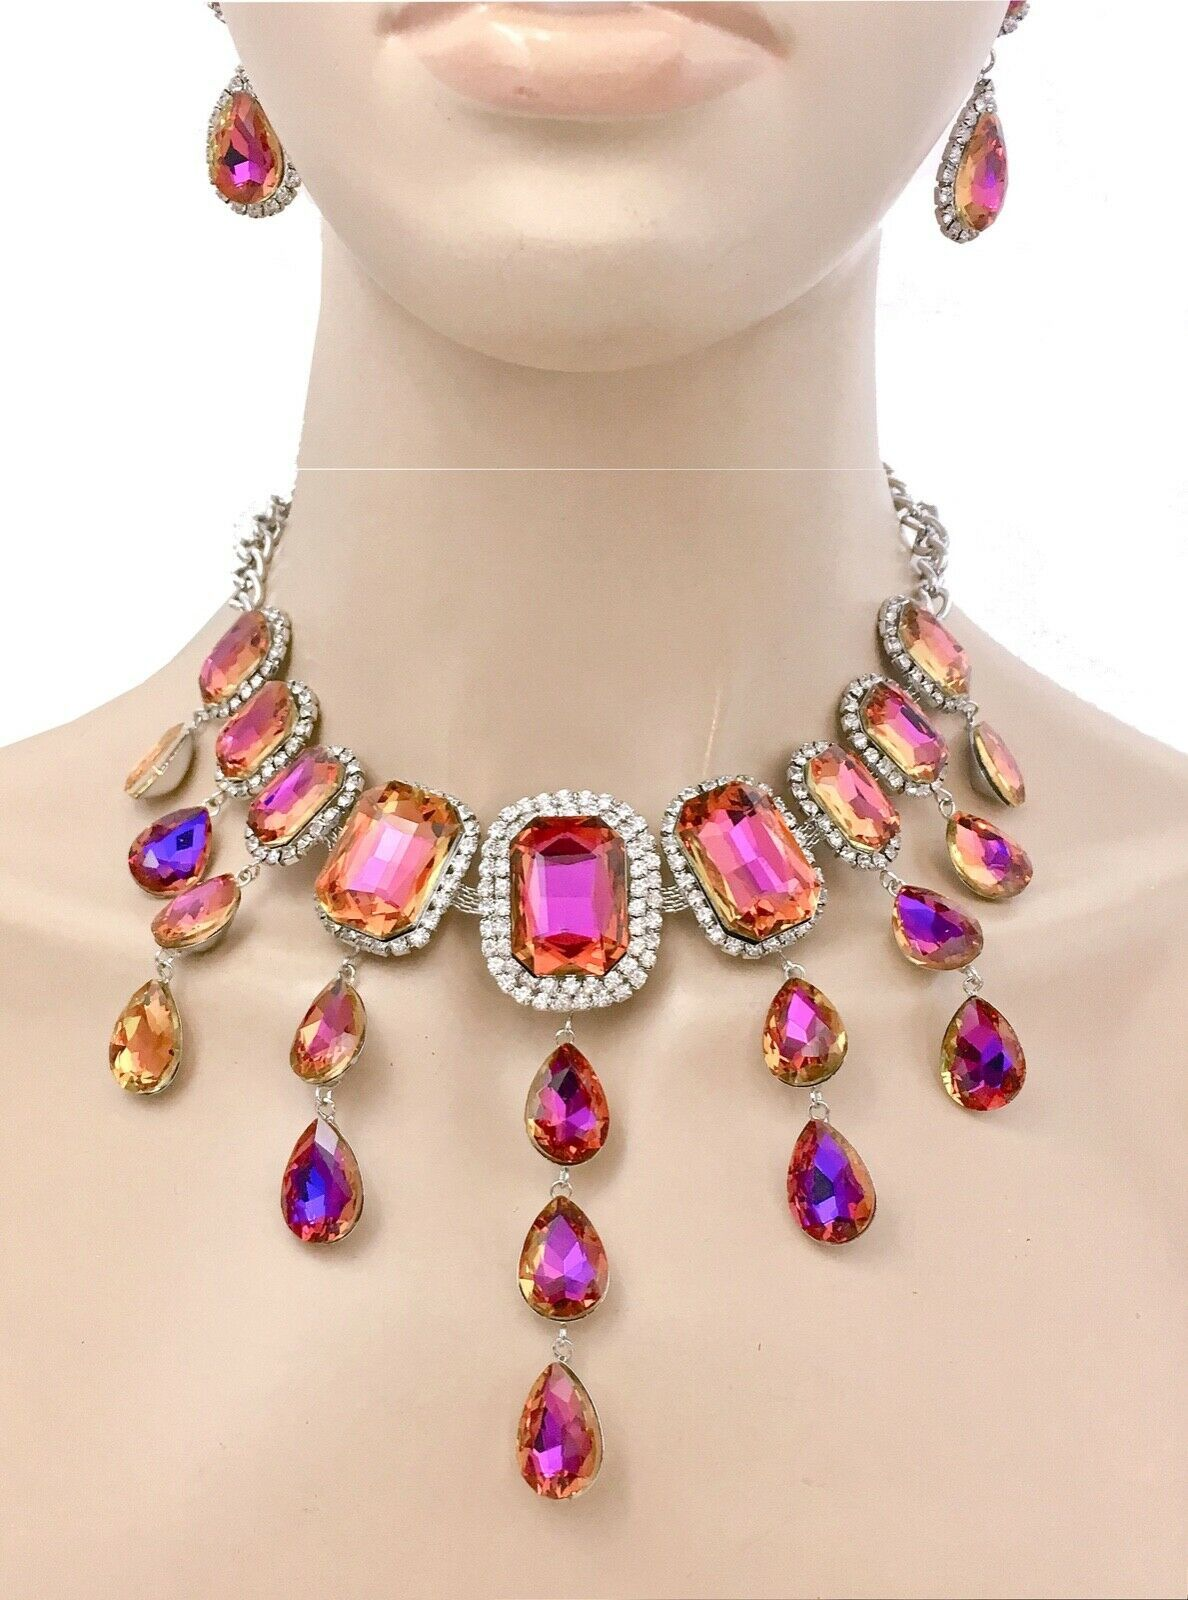 Primary image for Statement Necklace Earrings Iridescent Tangerine/Purple Crystal Pageant Party